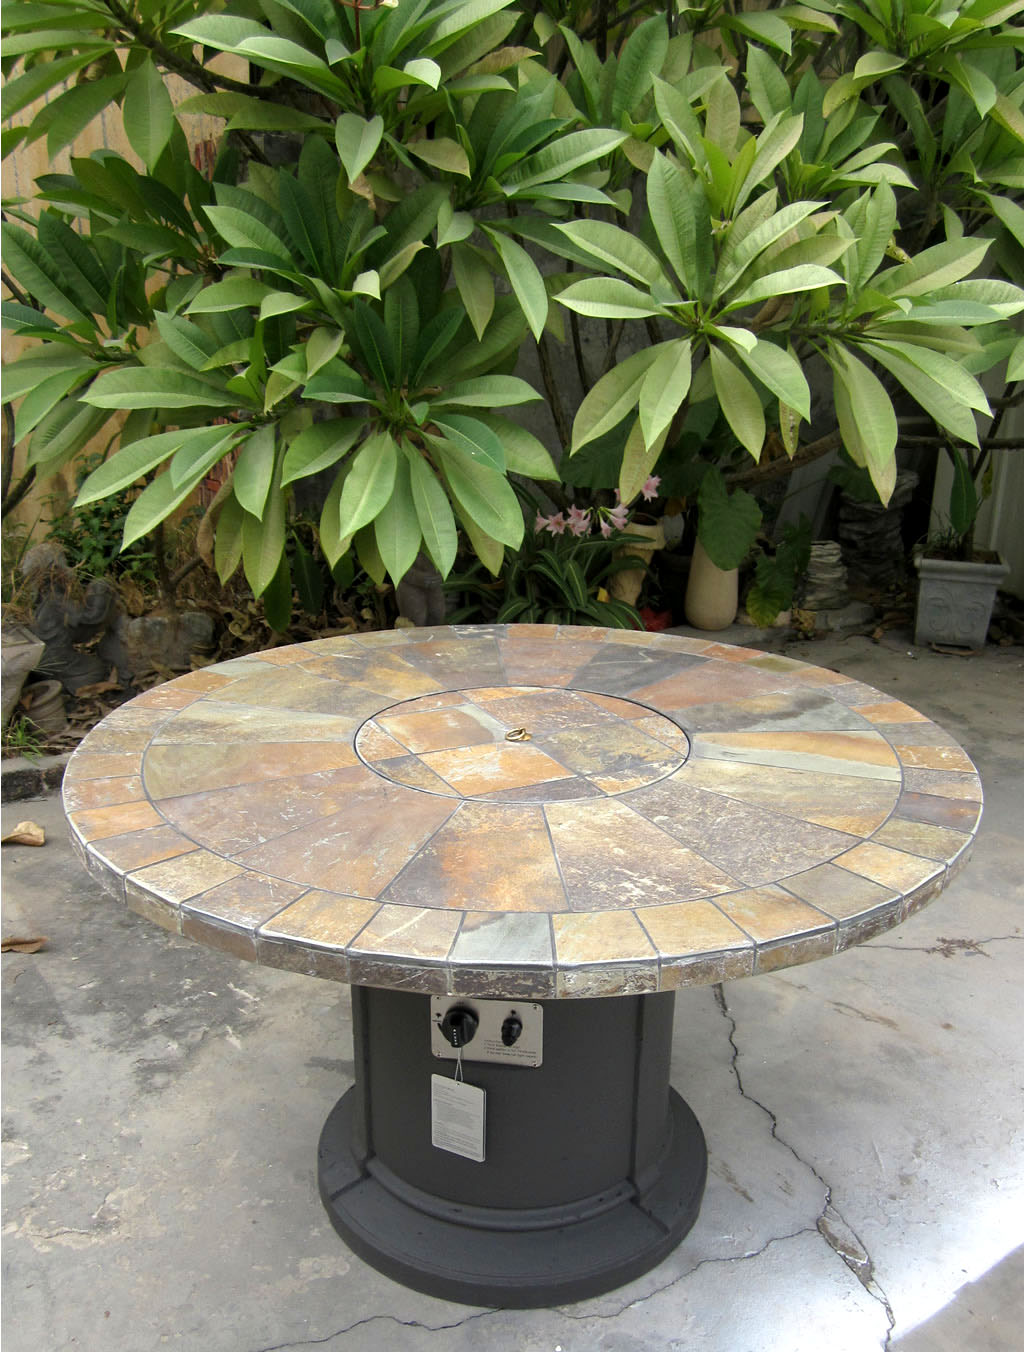 new 2016 outdoor natural slate fire pit outdoor dining table propane firepit ebay. Black Bedroom Furniture Sets. Home Design Ideas